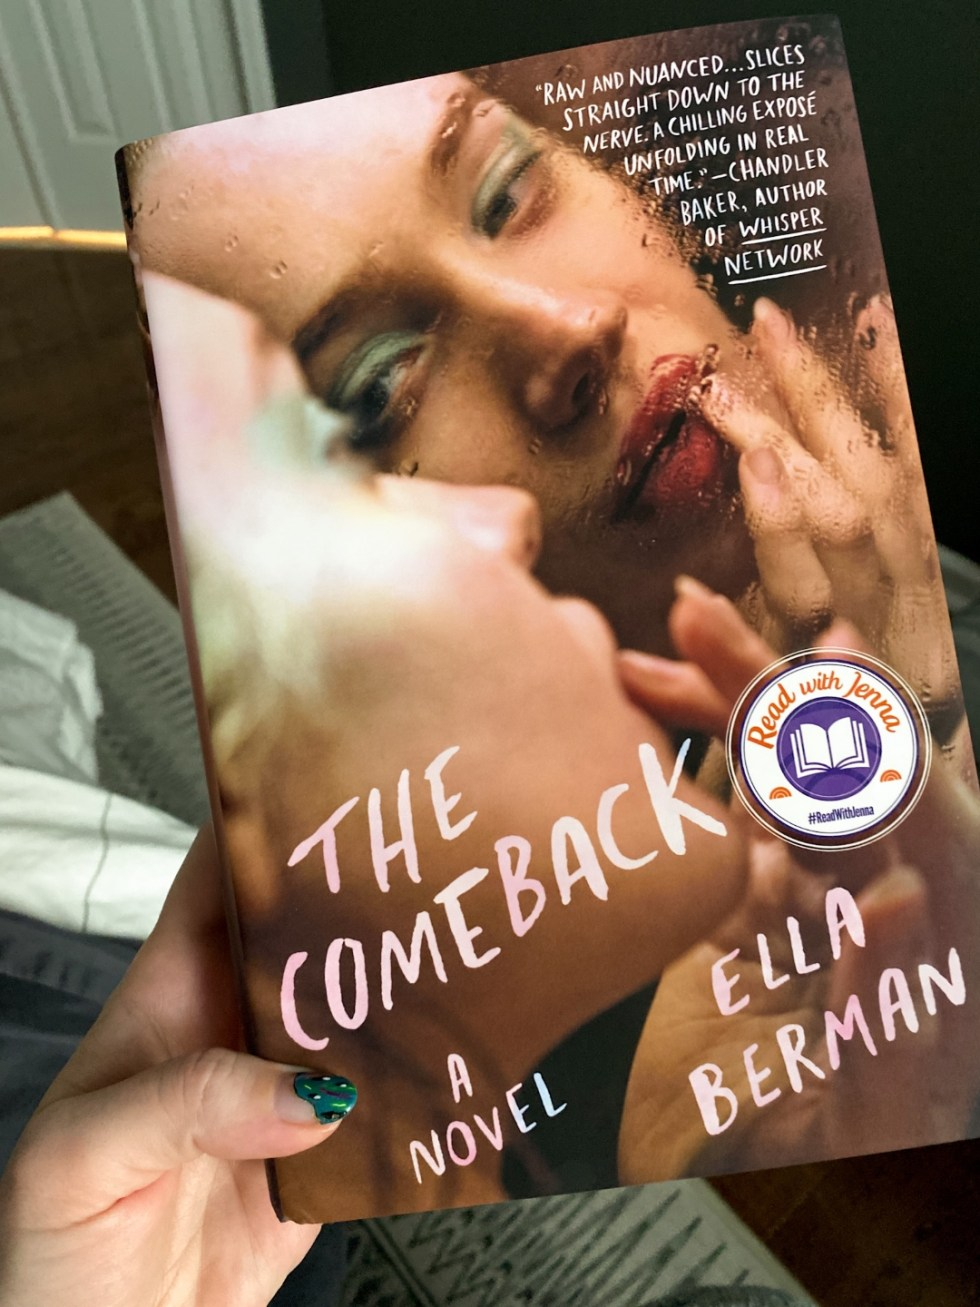 2021 Reading List: What I've Read So Far - I'm Fixin' To - @imfixintoblog | 2021 Reading List by popular NC lifestyle blog, I'm Fixin' To: image of The Comeback.